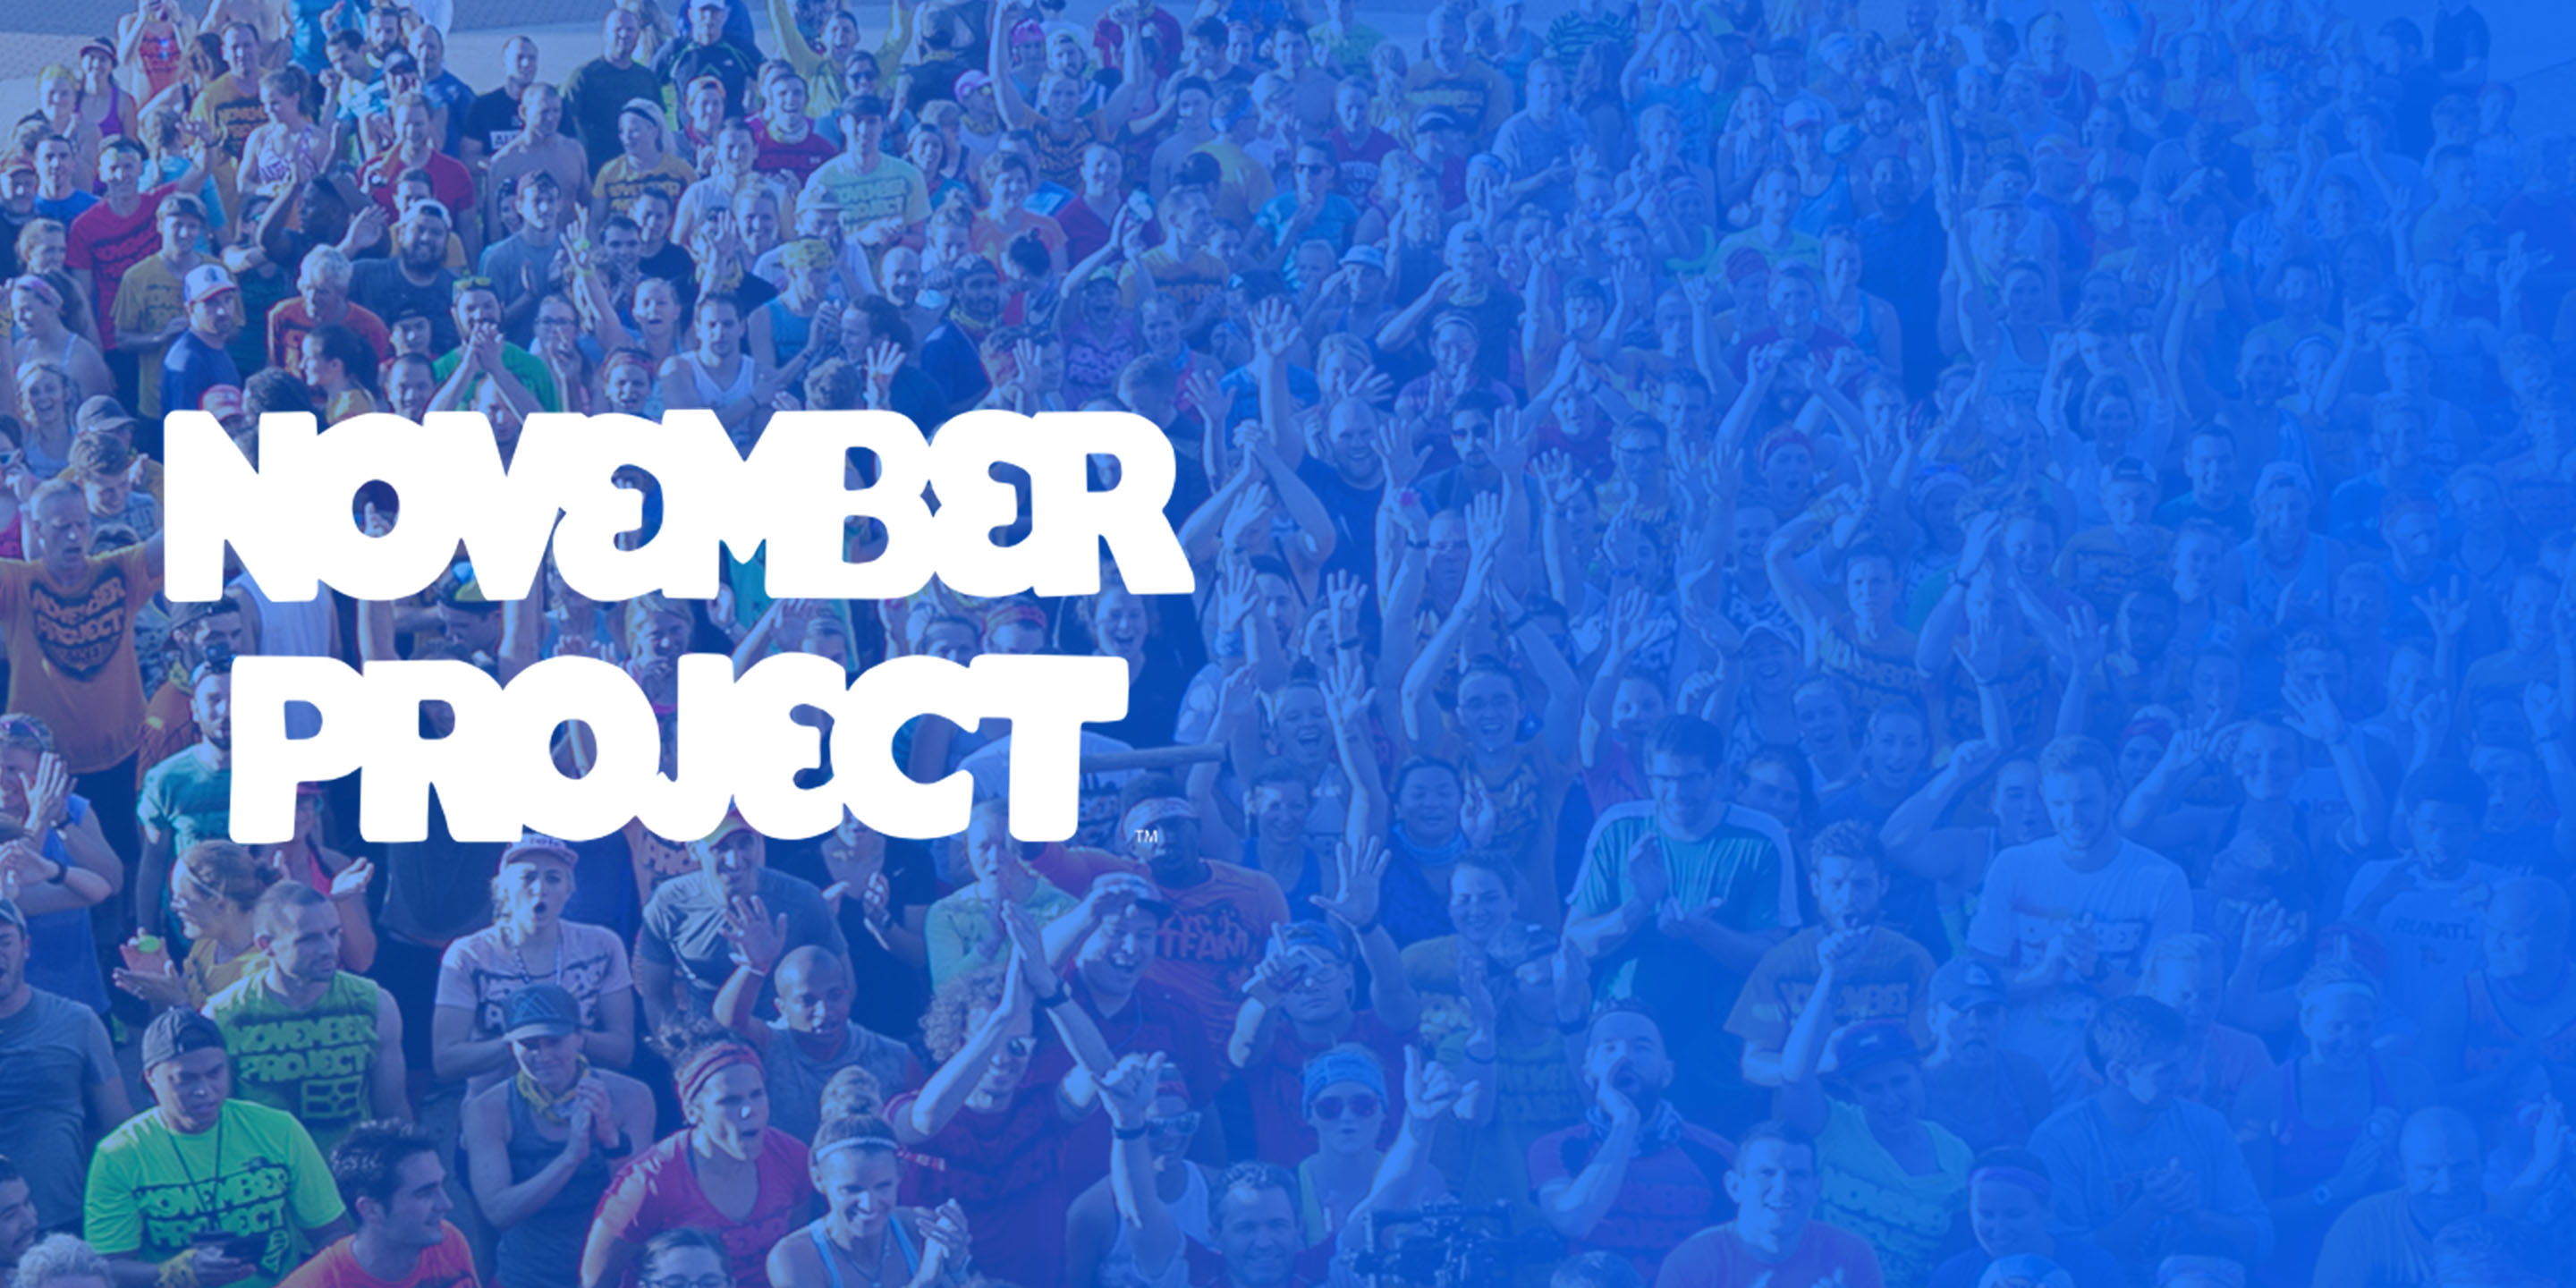 Text that reads 'November Project' over a picture of a crowd